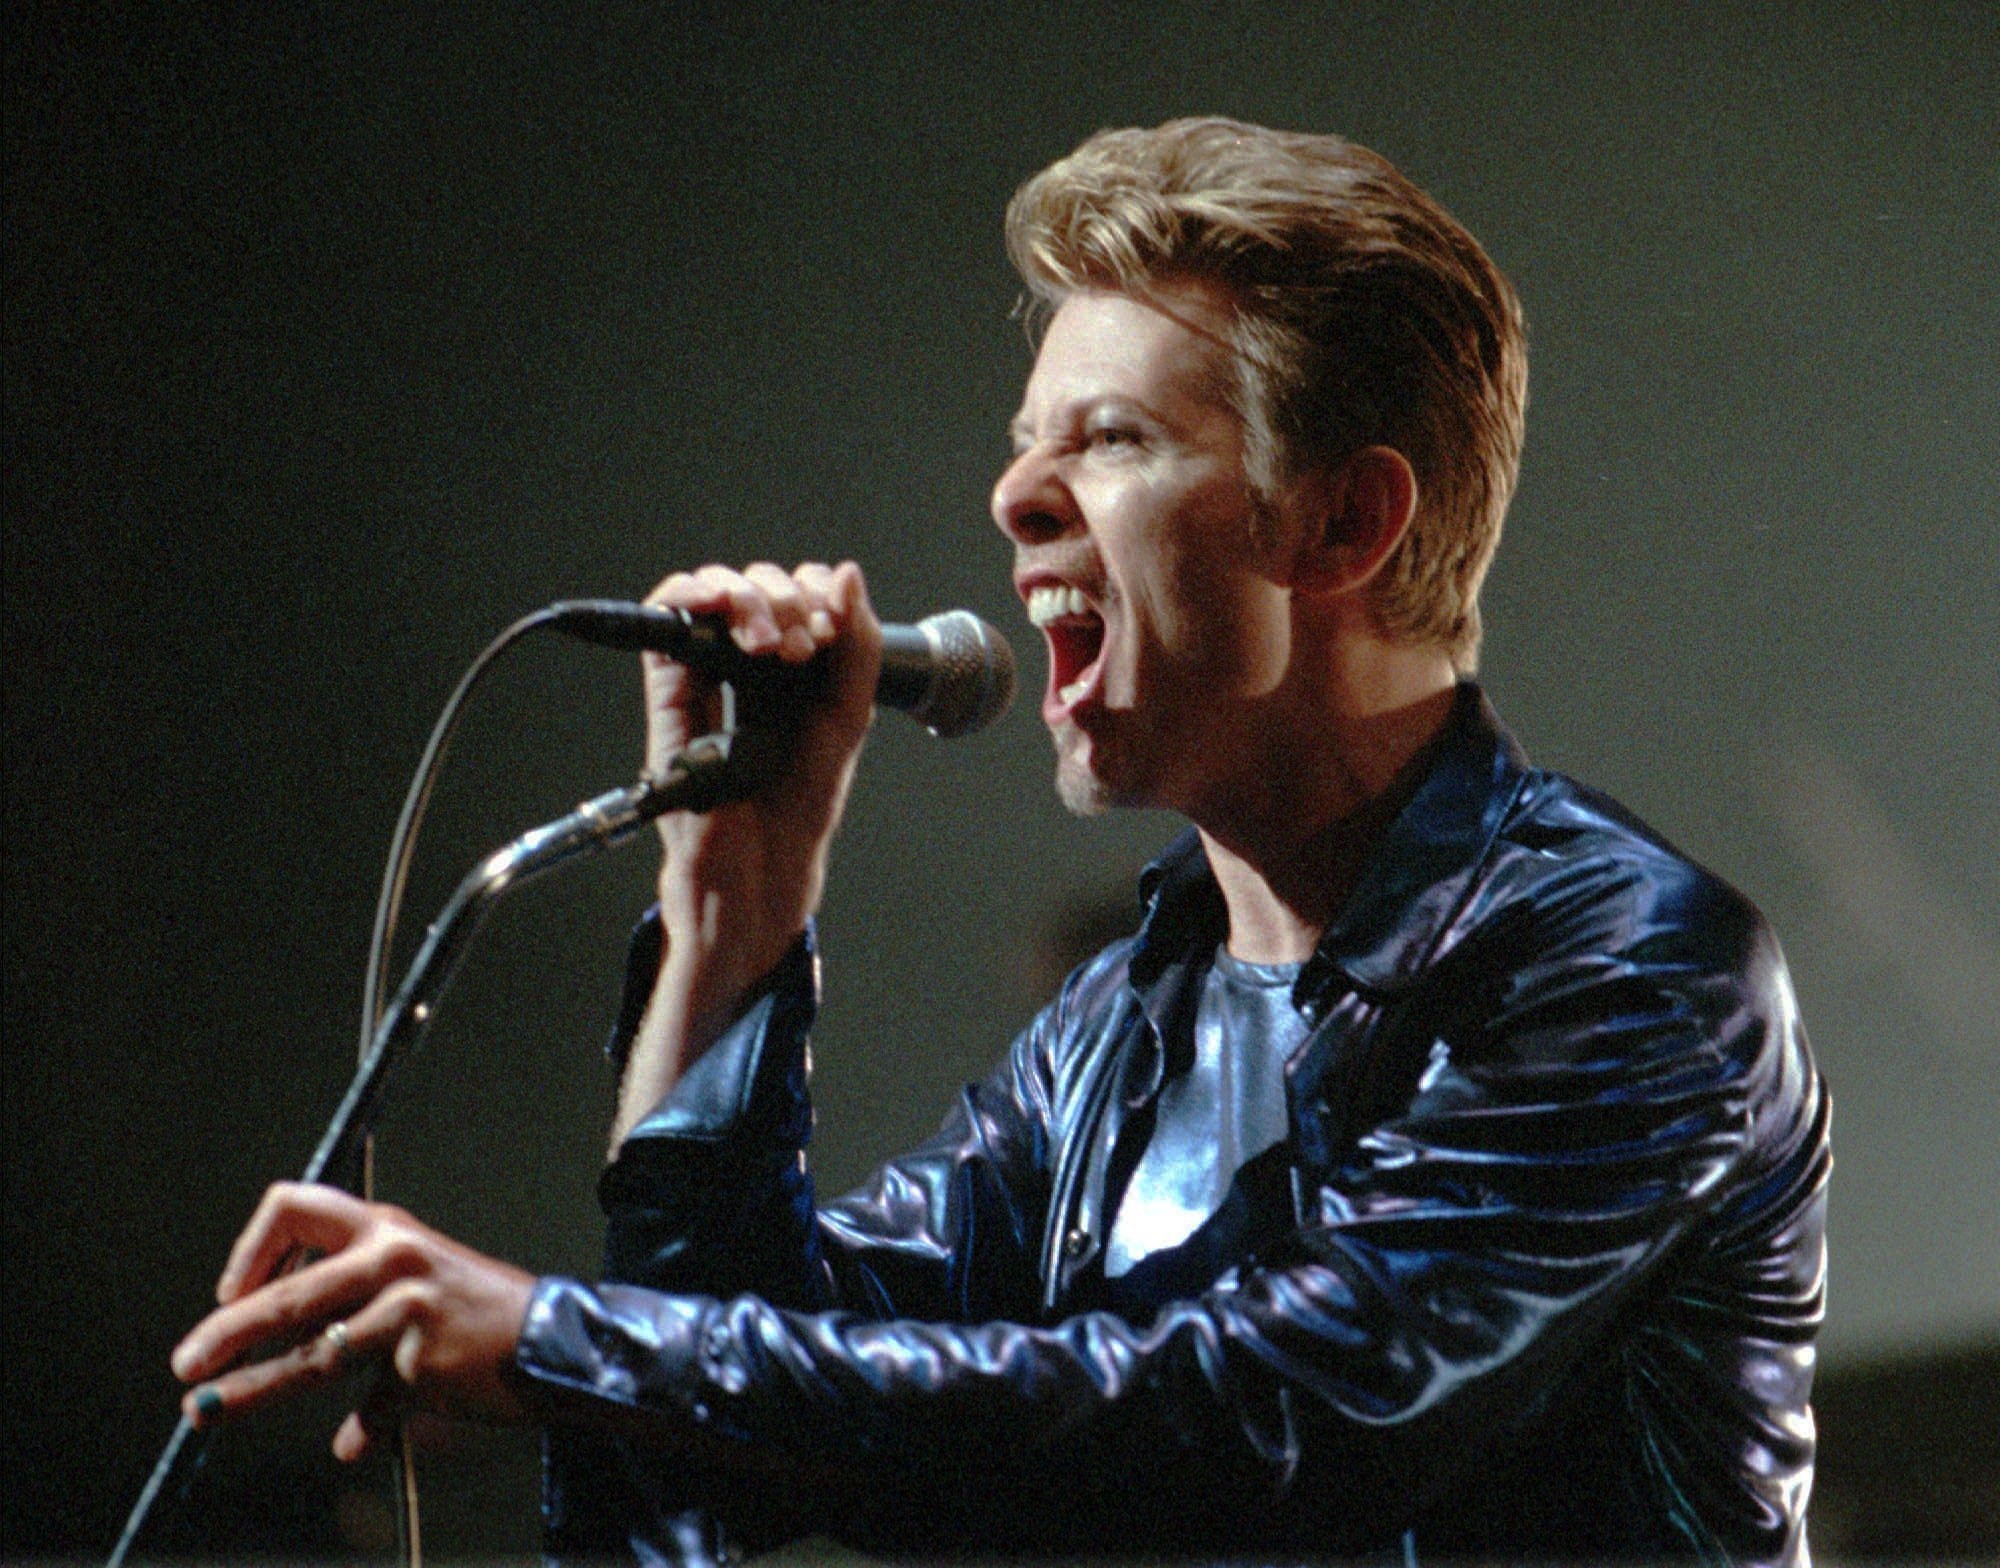 david bowie says merry christmas the san diego union tribune - David Bowie Christmas